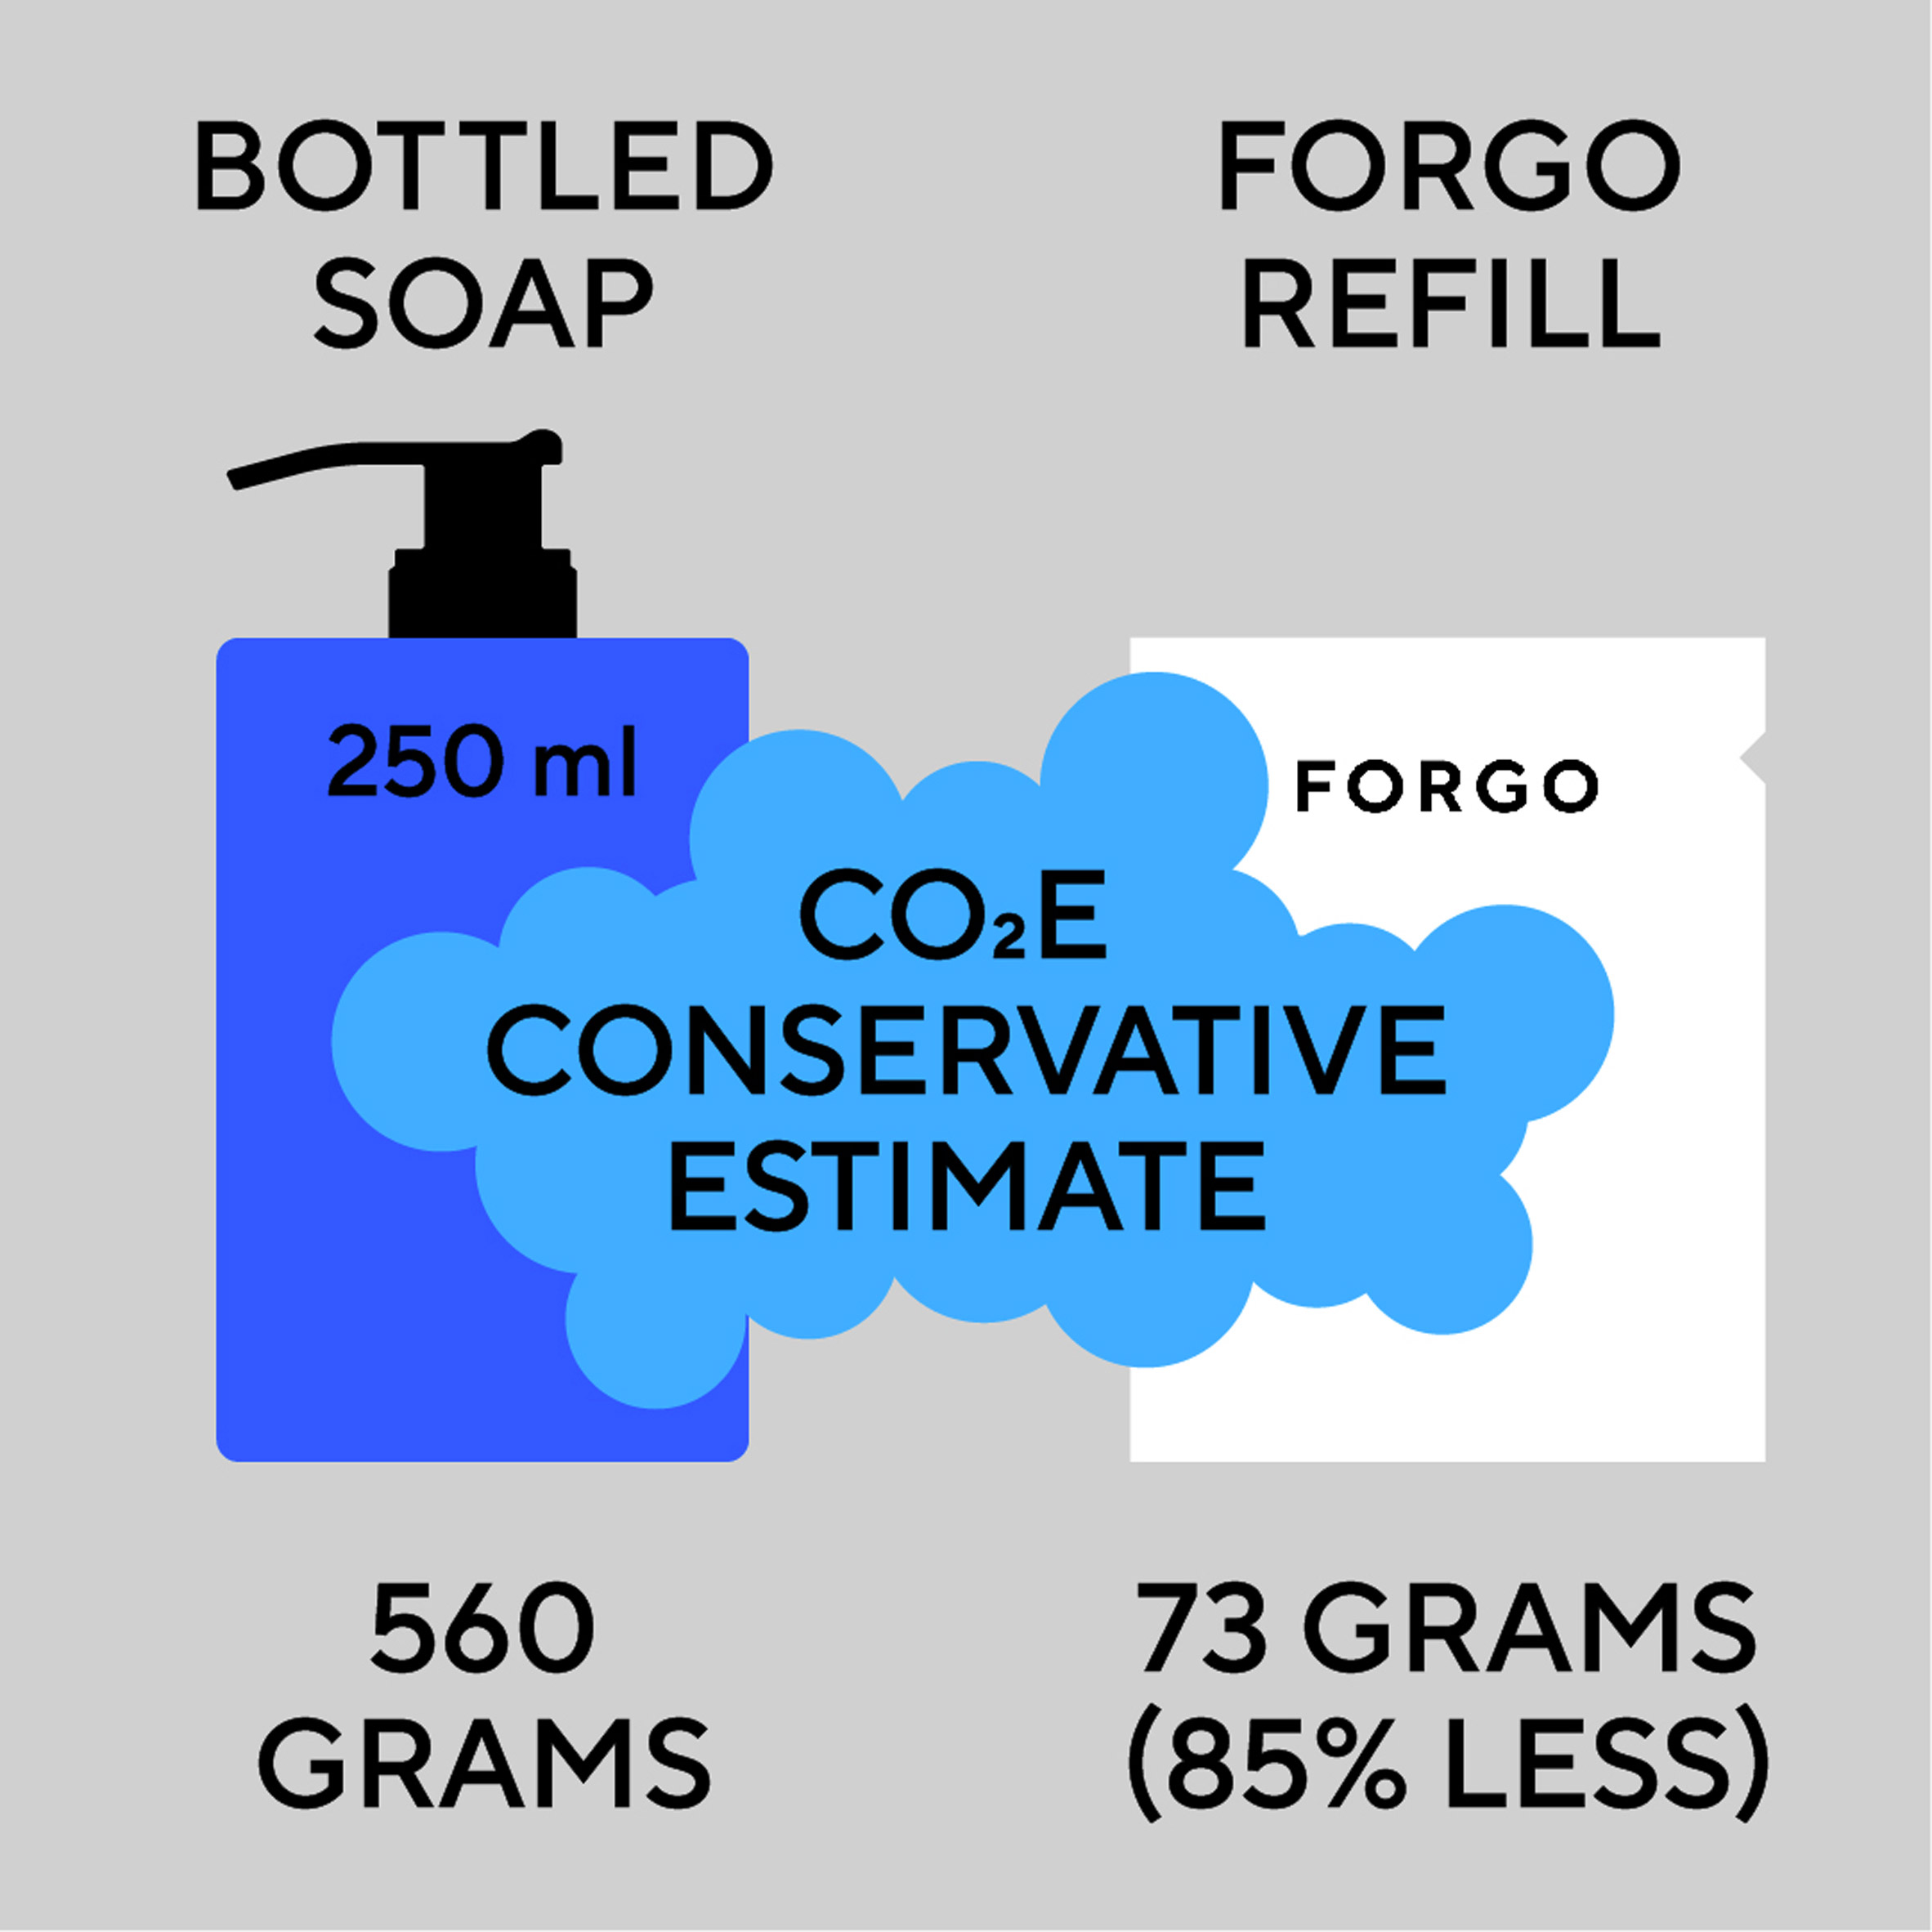 Carbon footprint comparison of bottled soap and paper refill sachet by Forgo